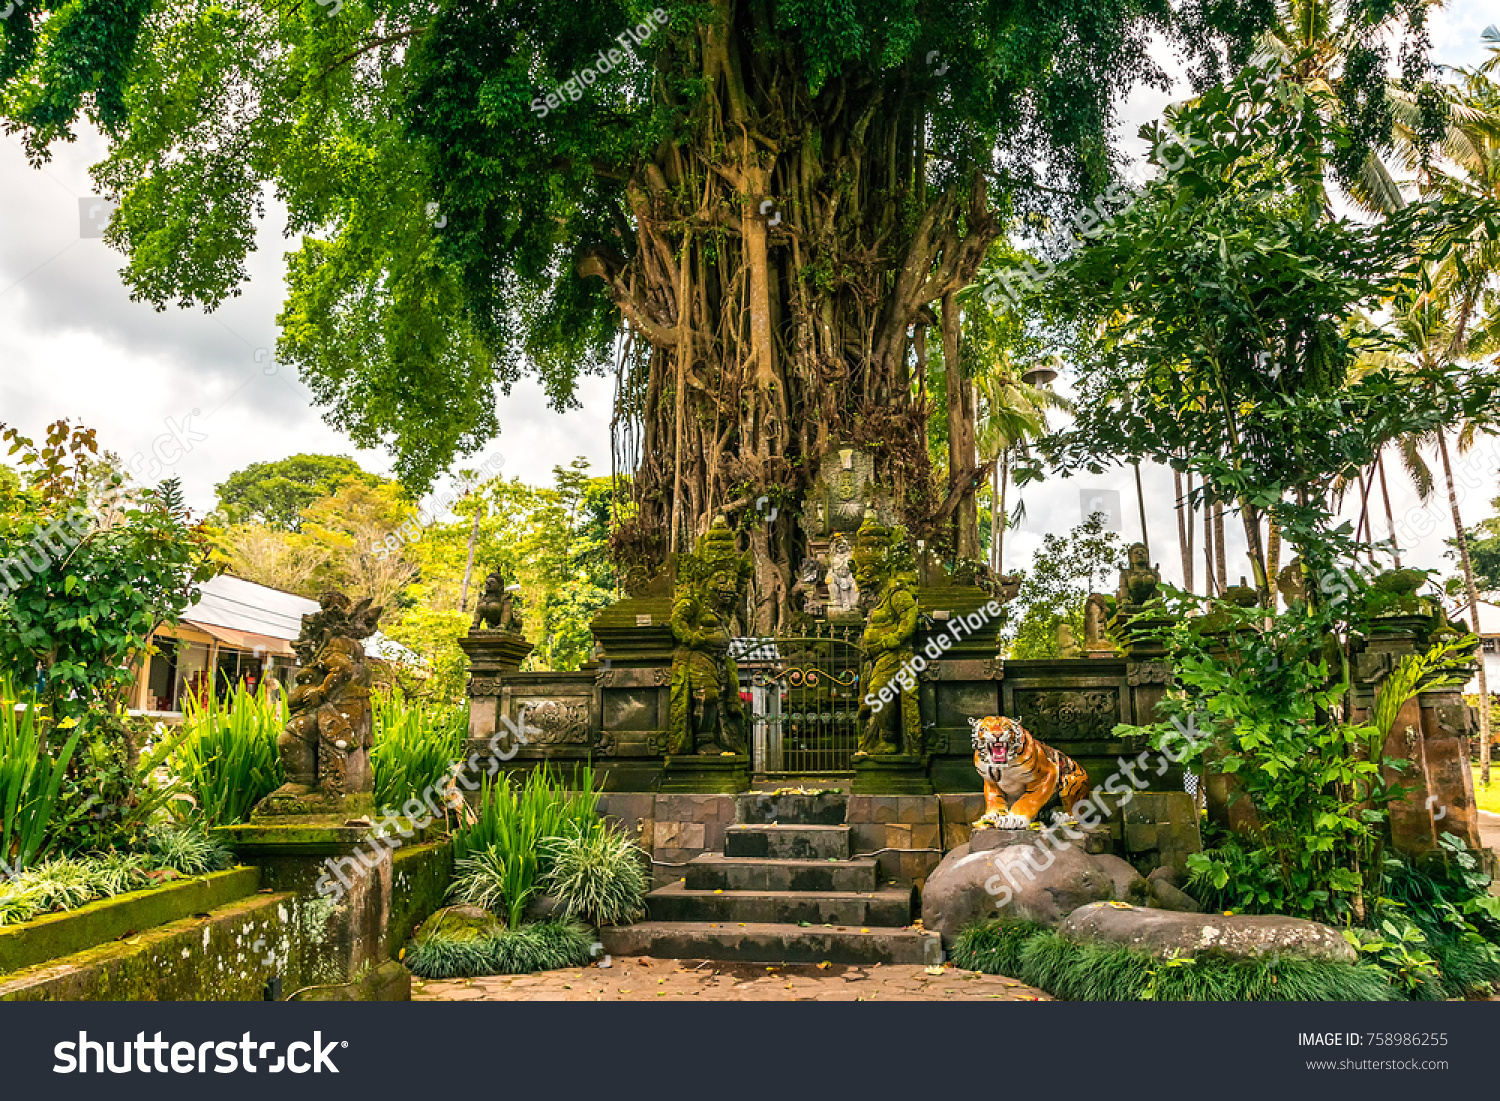 Sacred Tree Little Temple Tiger Figure Stock Photo (Royalty Free ...